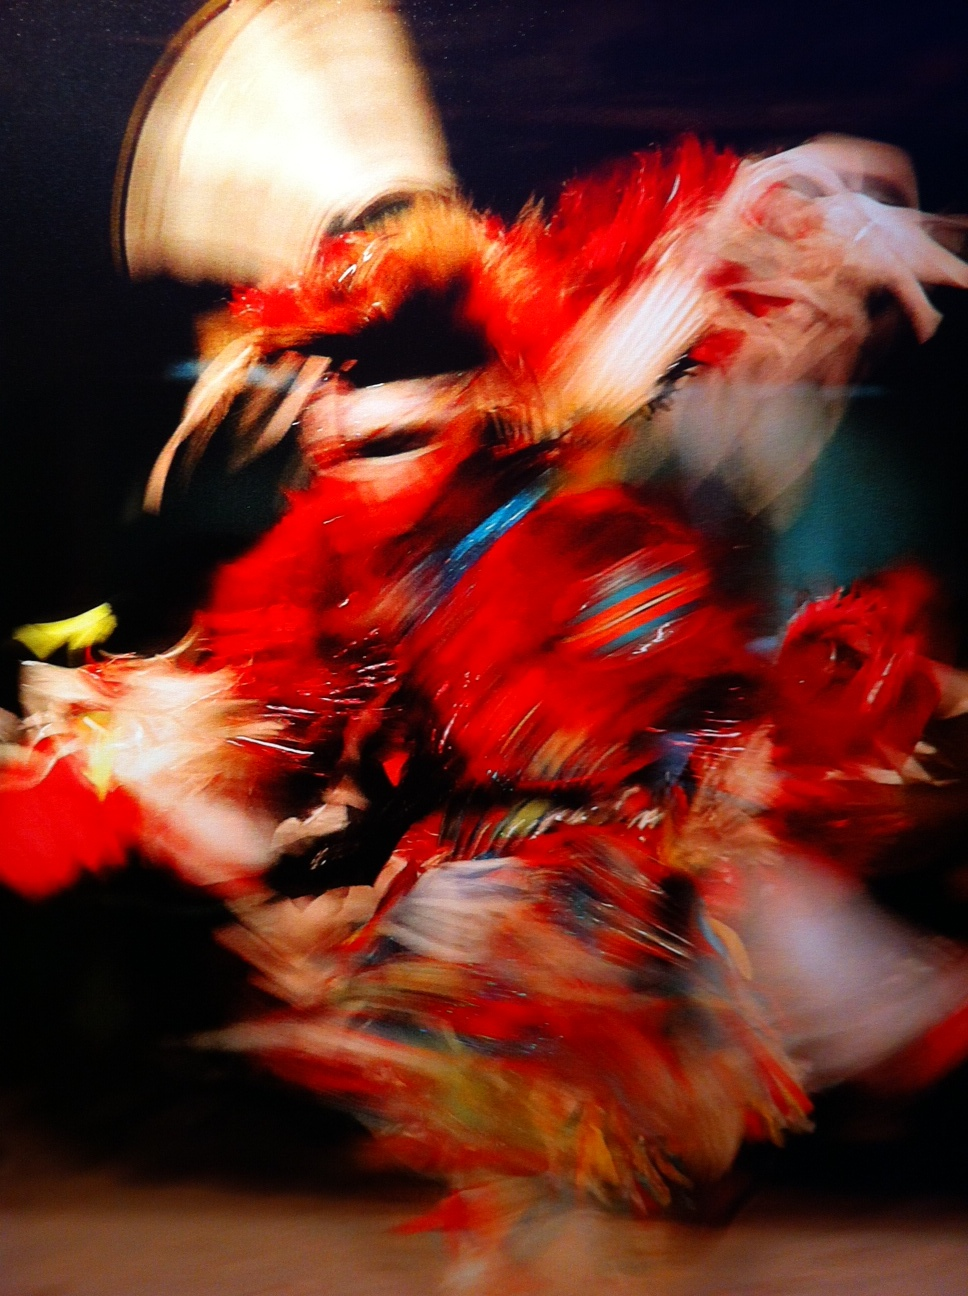 This photo of a First Nation Dancer caught my eye for its colour and movement.